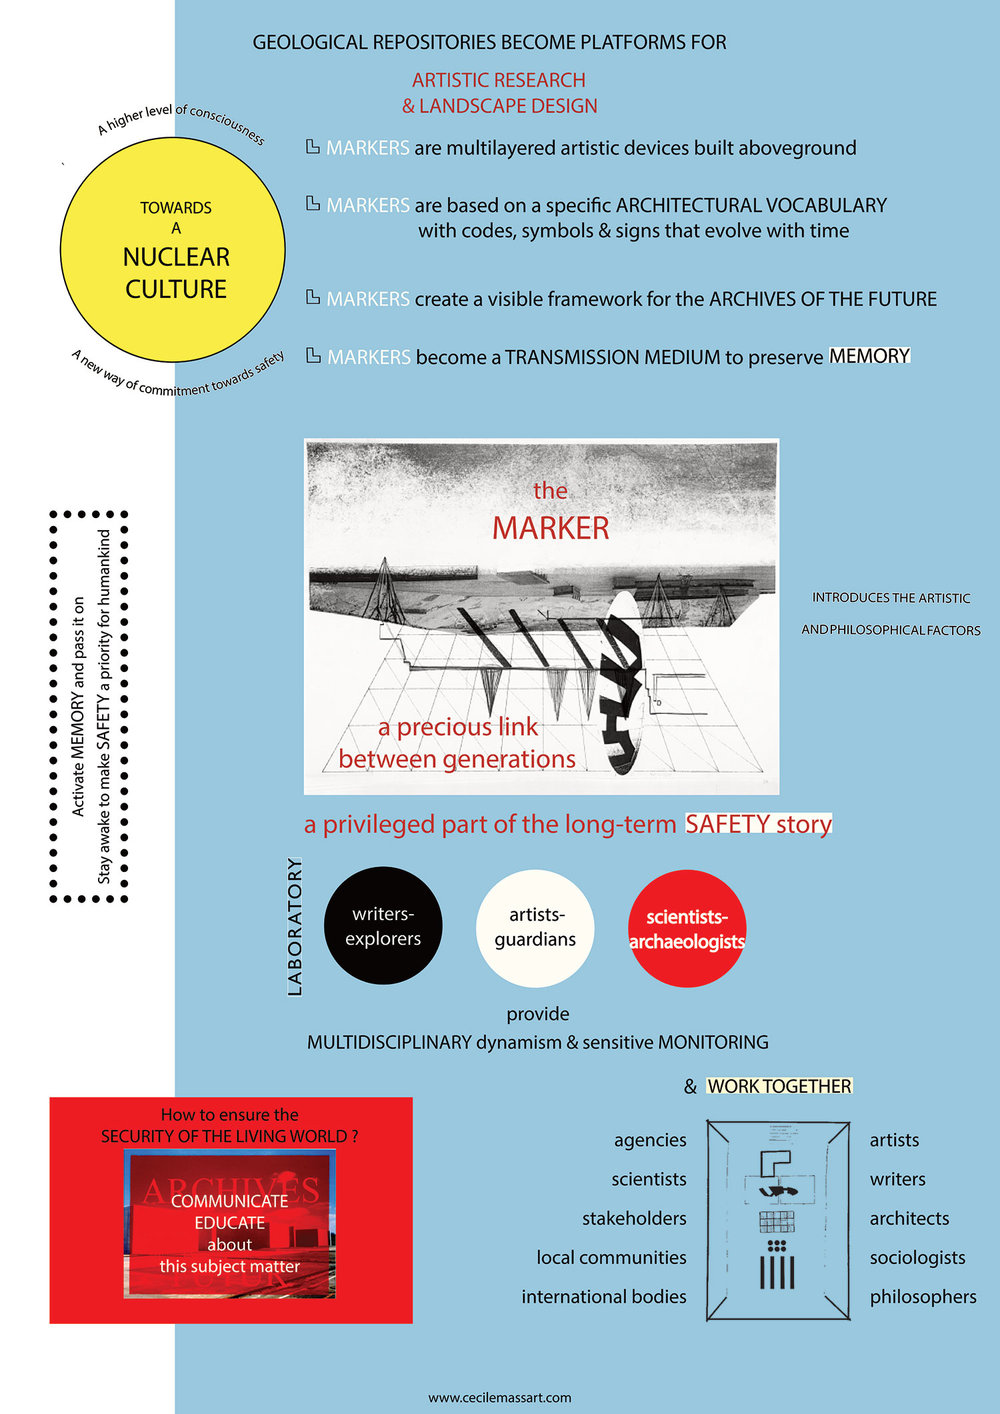 poster-NuclearCulture2014-page-0.jpg